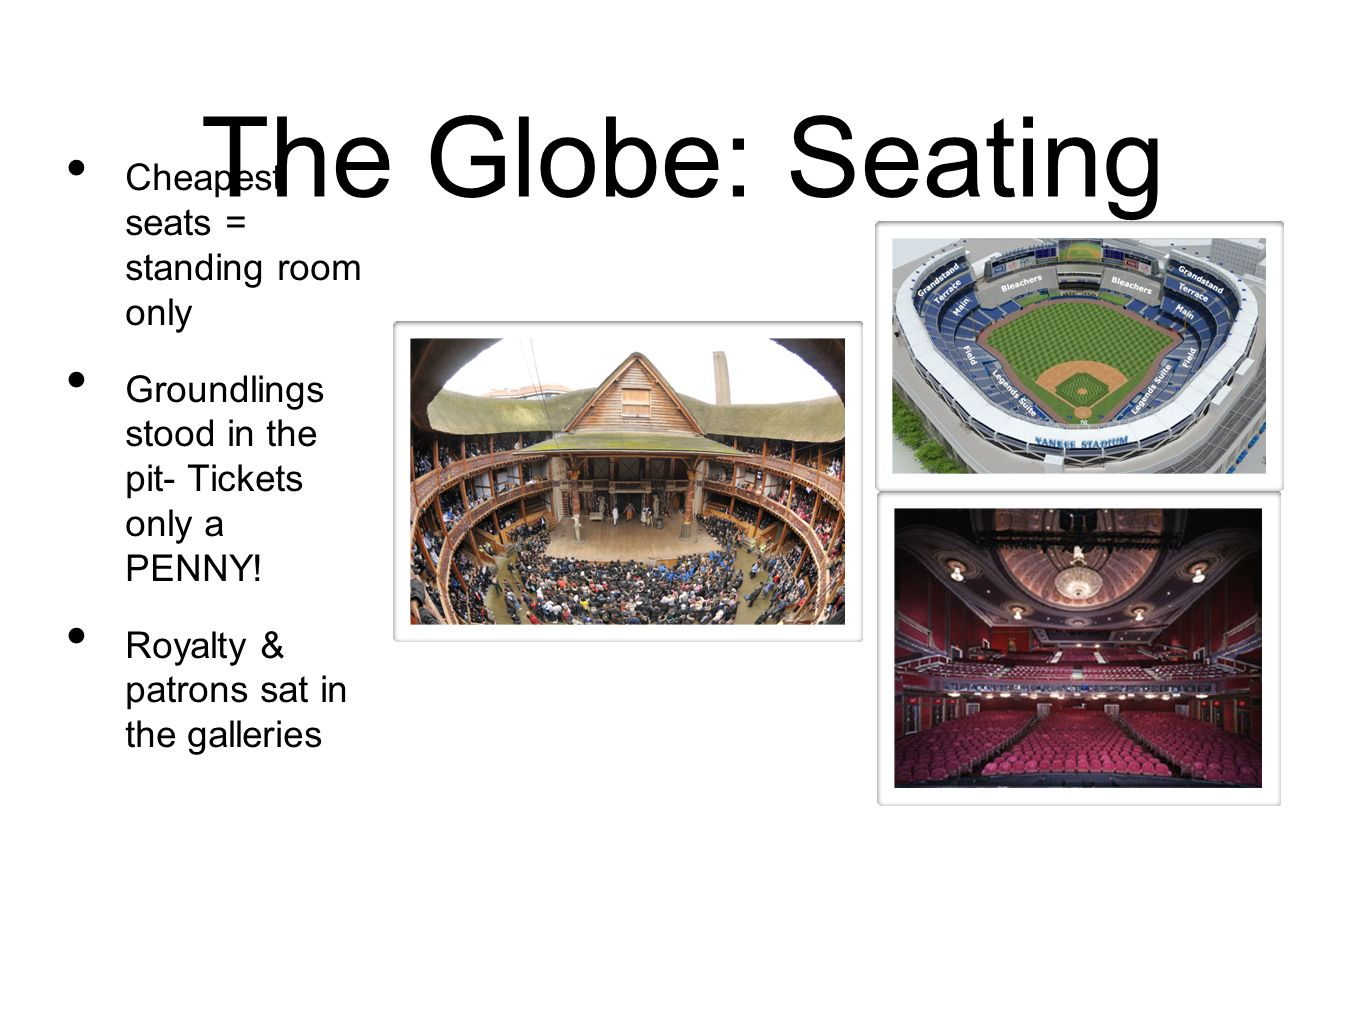 The Globe: Seating Cheapest seats = standing room only